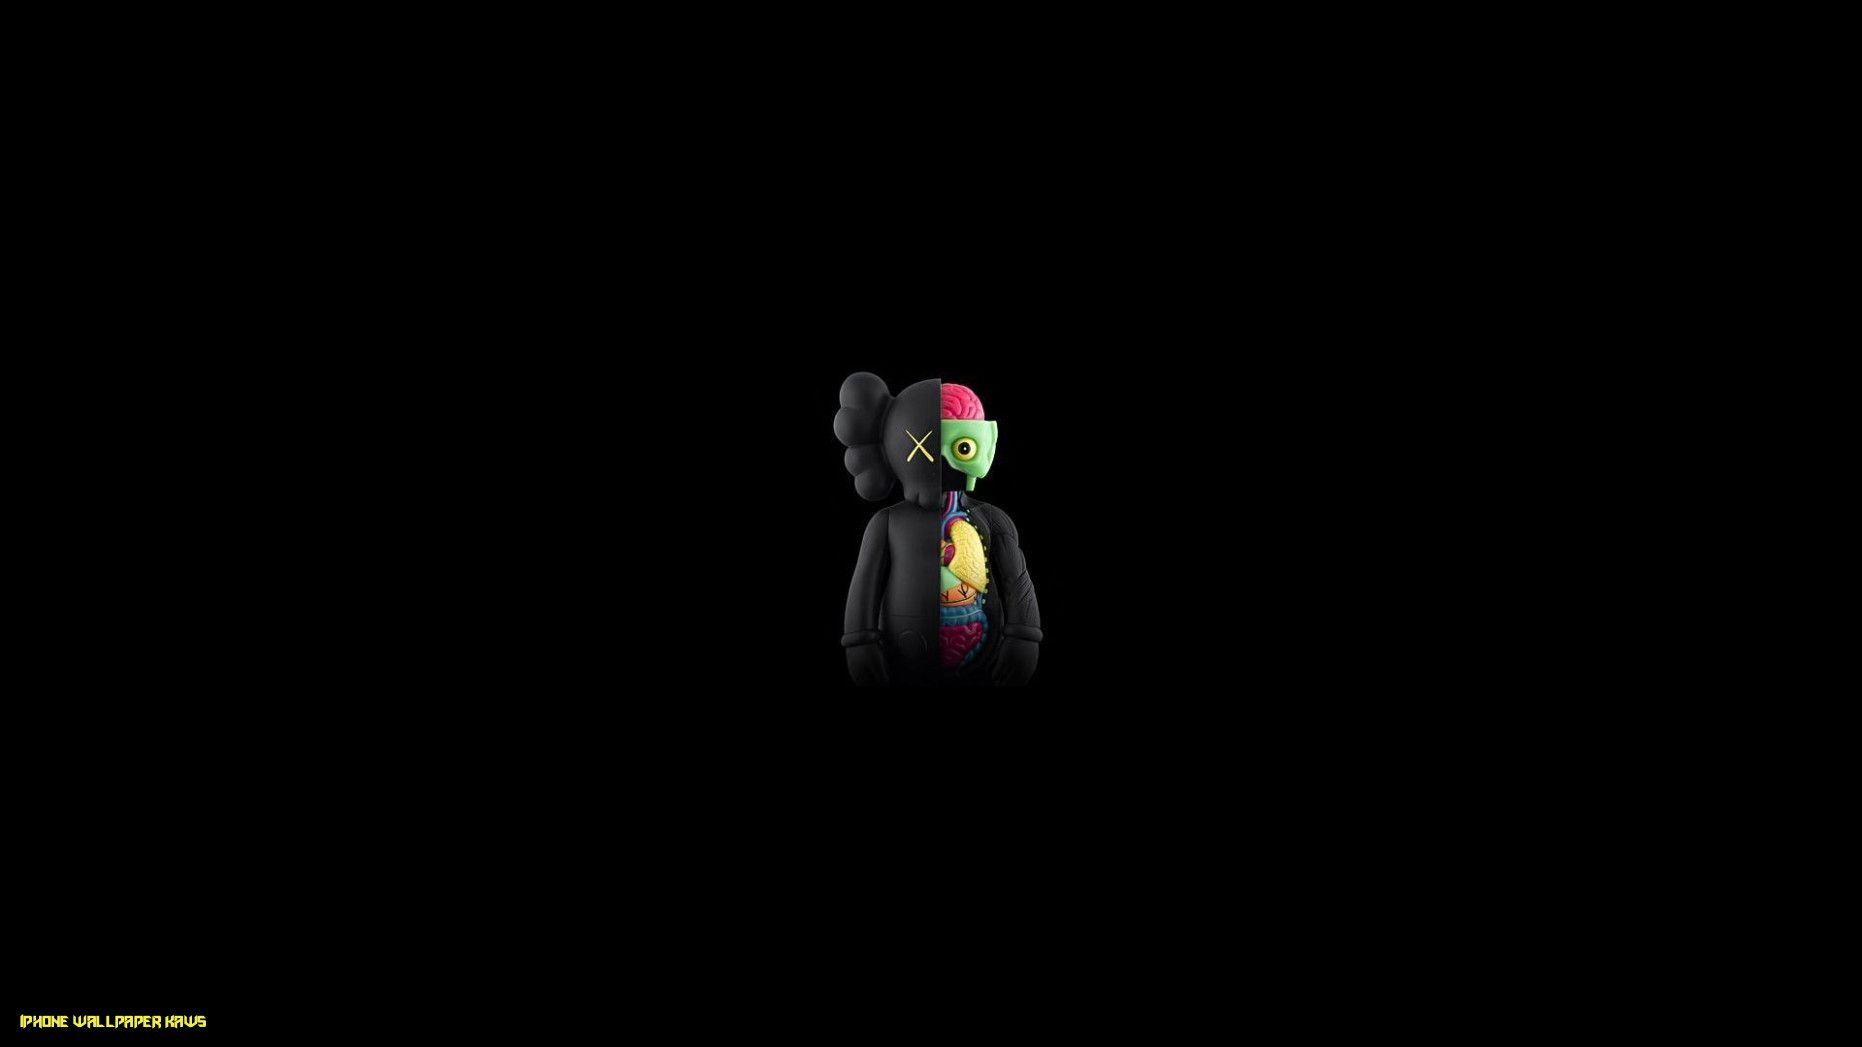 Eliminate Your Fears And Doubts About Iphone Wallpaper Kaws Iphone Wallpaper Kaws Kaws Wallpaper Bape Wallpapers Kaws Iphone Wallpaper